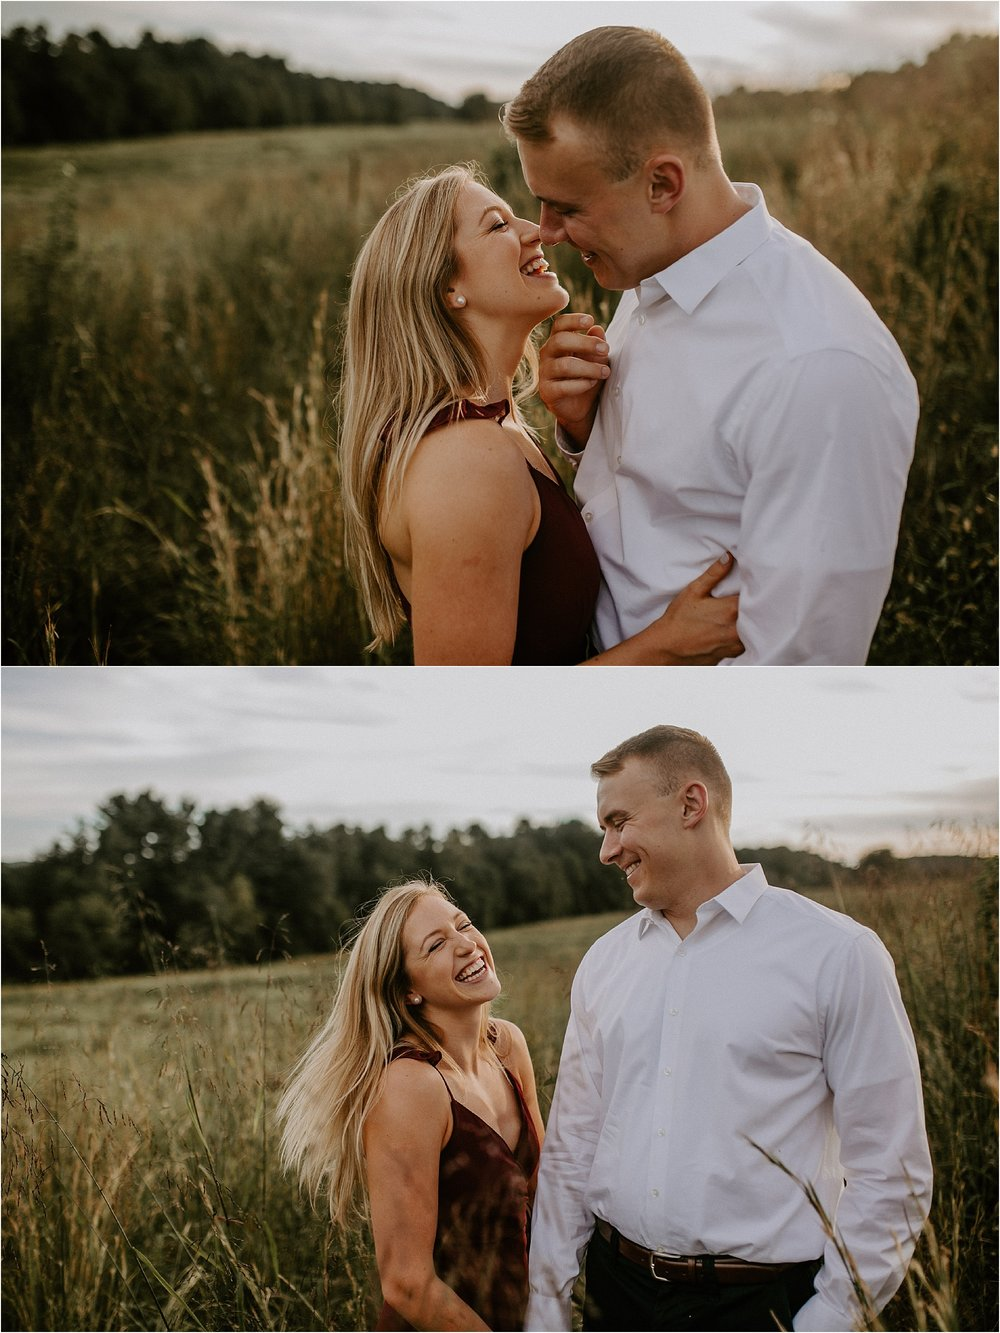 Sarah_Brookhart_Valley_Forge_Engagement_Photographer_0004.jpg